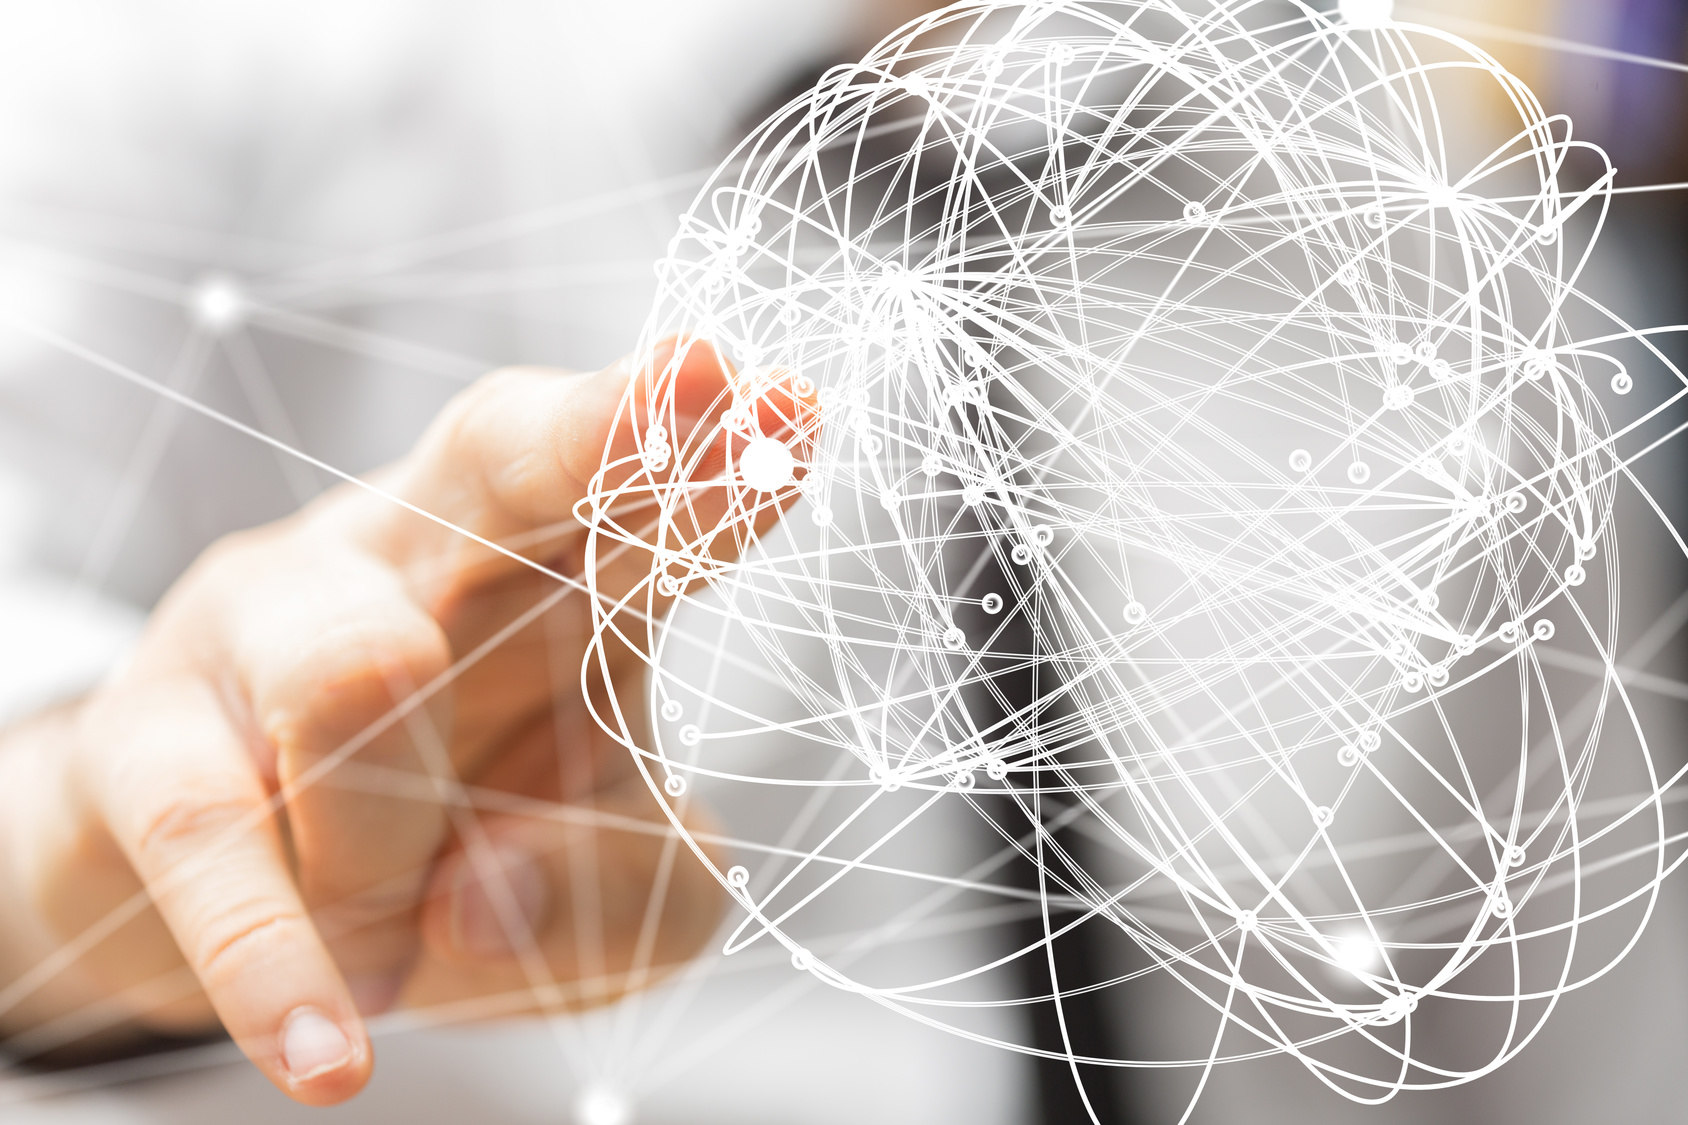 [Whitepaper] How Managed Cloud Services Can Facilitate Your Digital Transformation